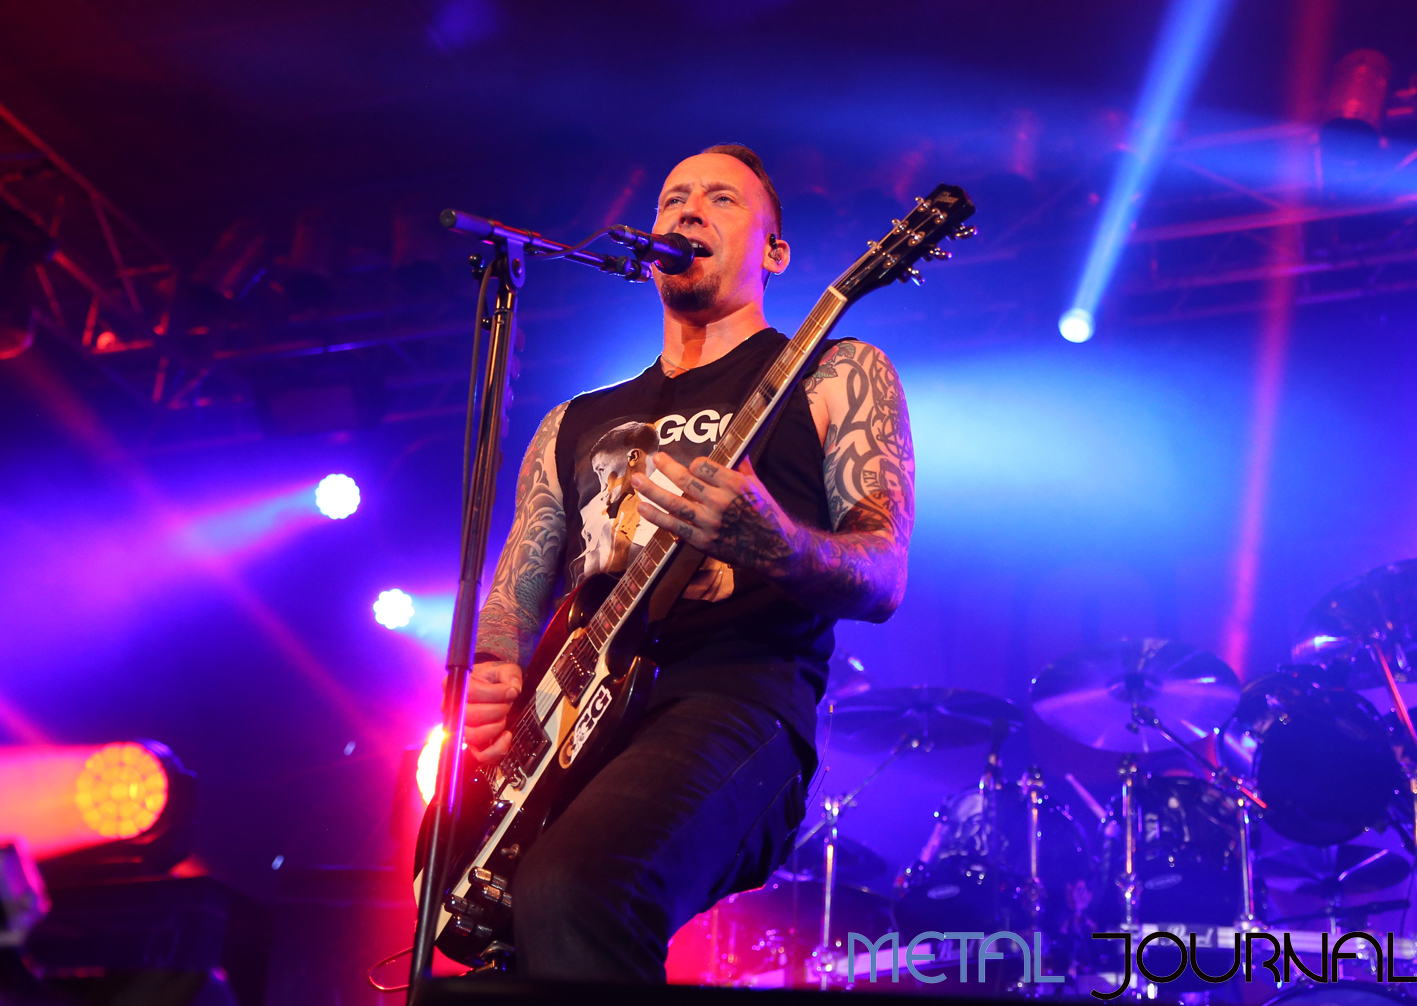 volbeat - metal journal pic 5